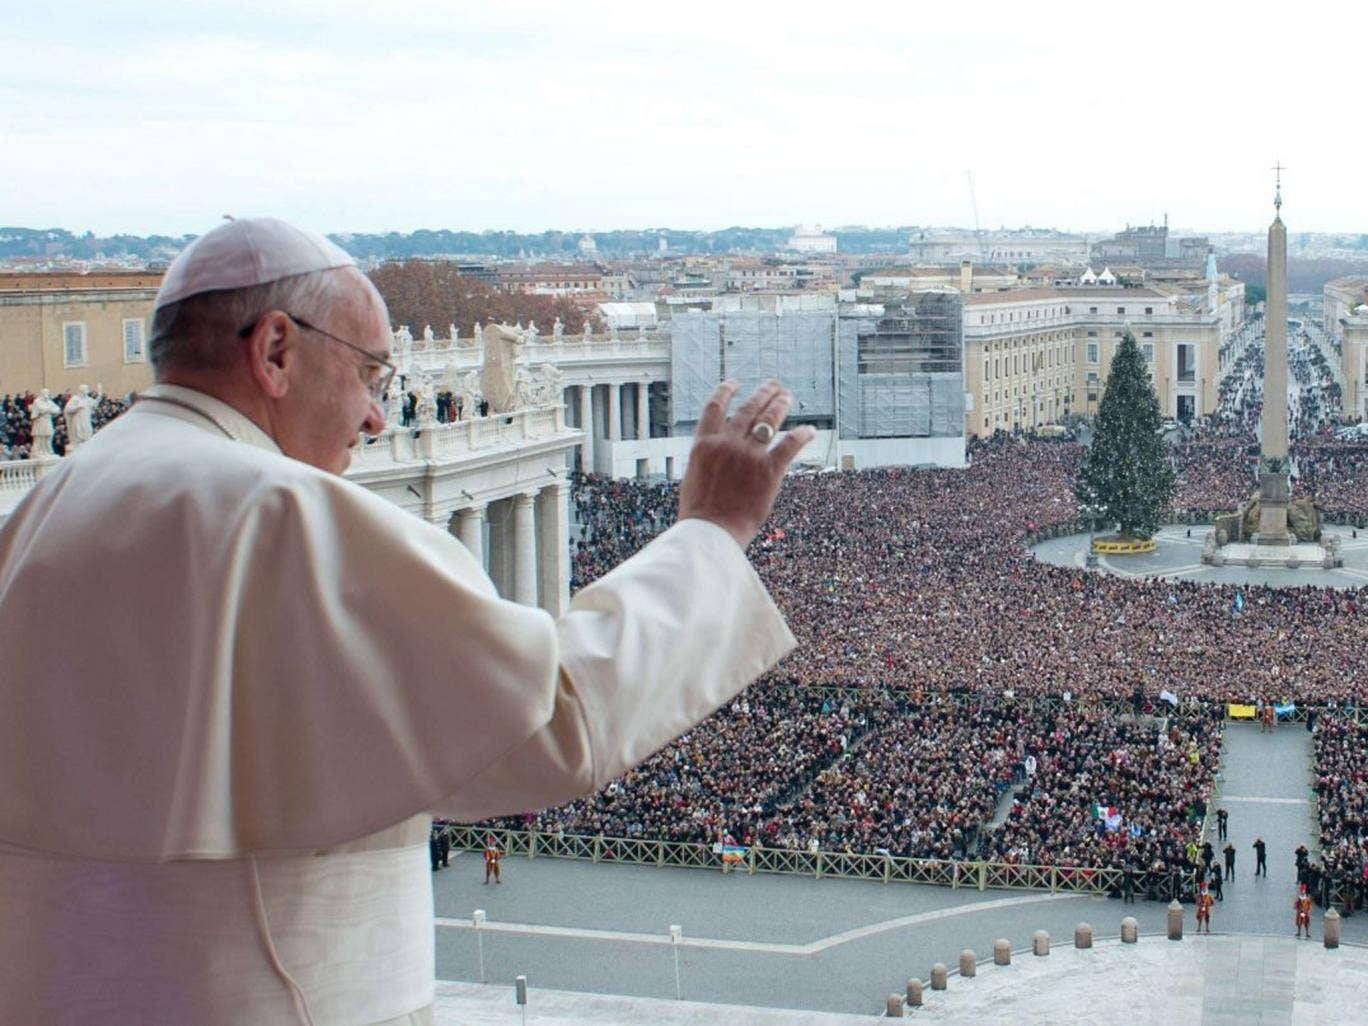 Pope Francis delivers his first 'Urbi et Orbi' (to the city and world) message from the balcony overlooking St. Peter's Square at the Vatican